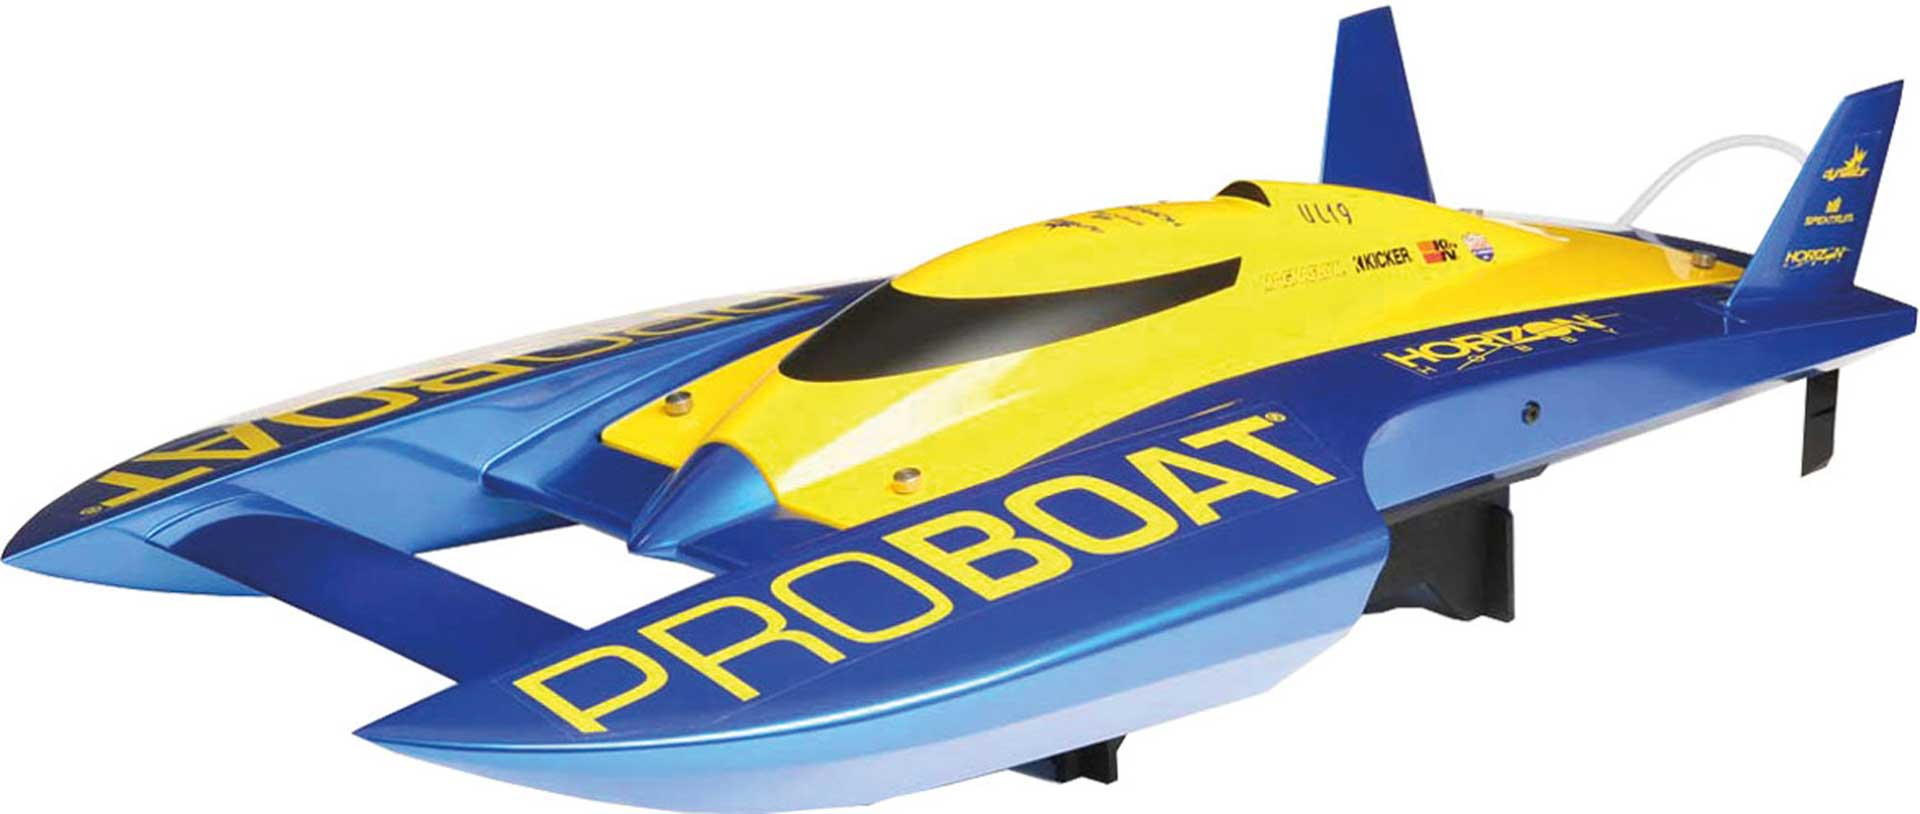 PROBOAT UL 19 30-INCH HYDROPLANE RENNBOOT RTR